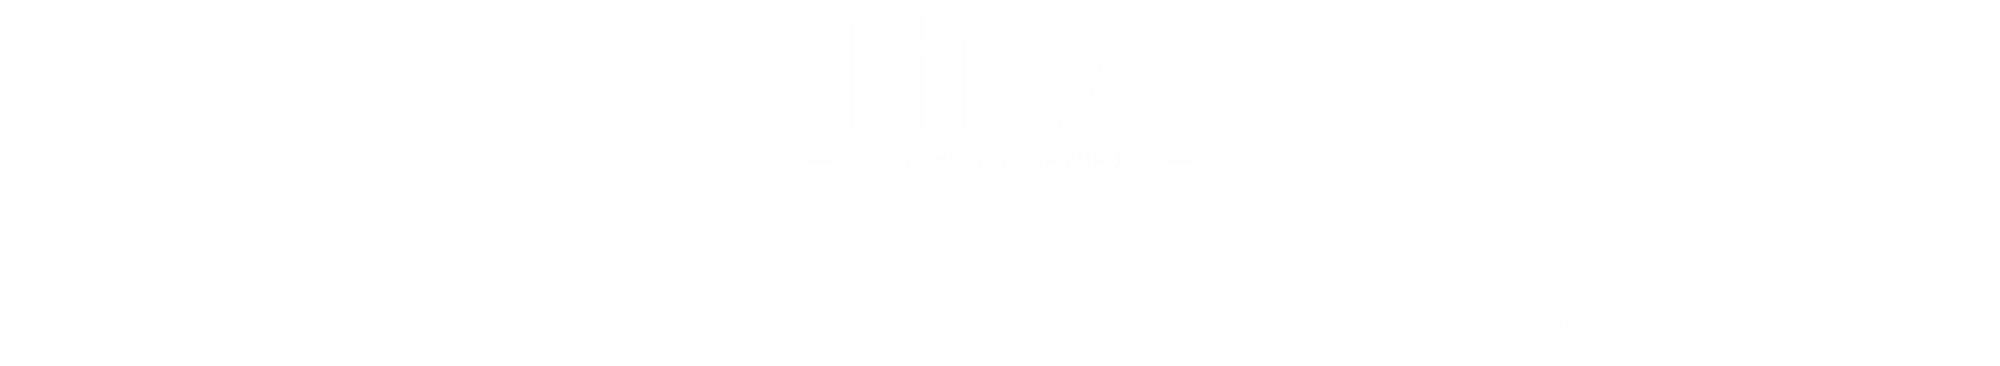 Homepage_Logo_French.png